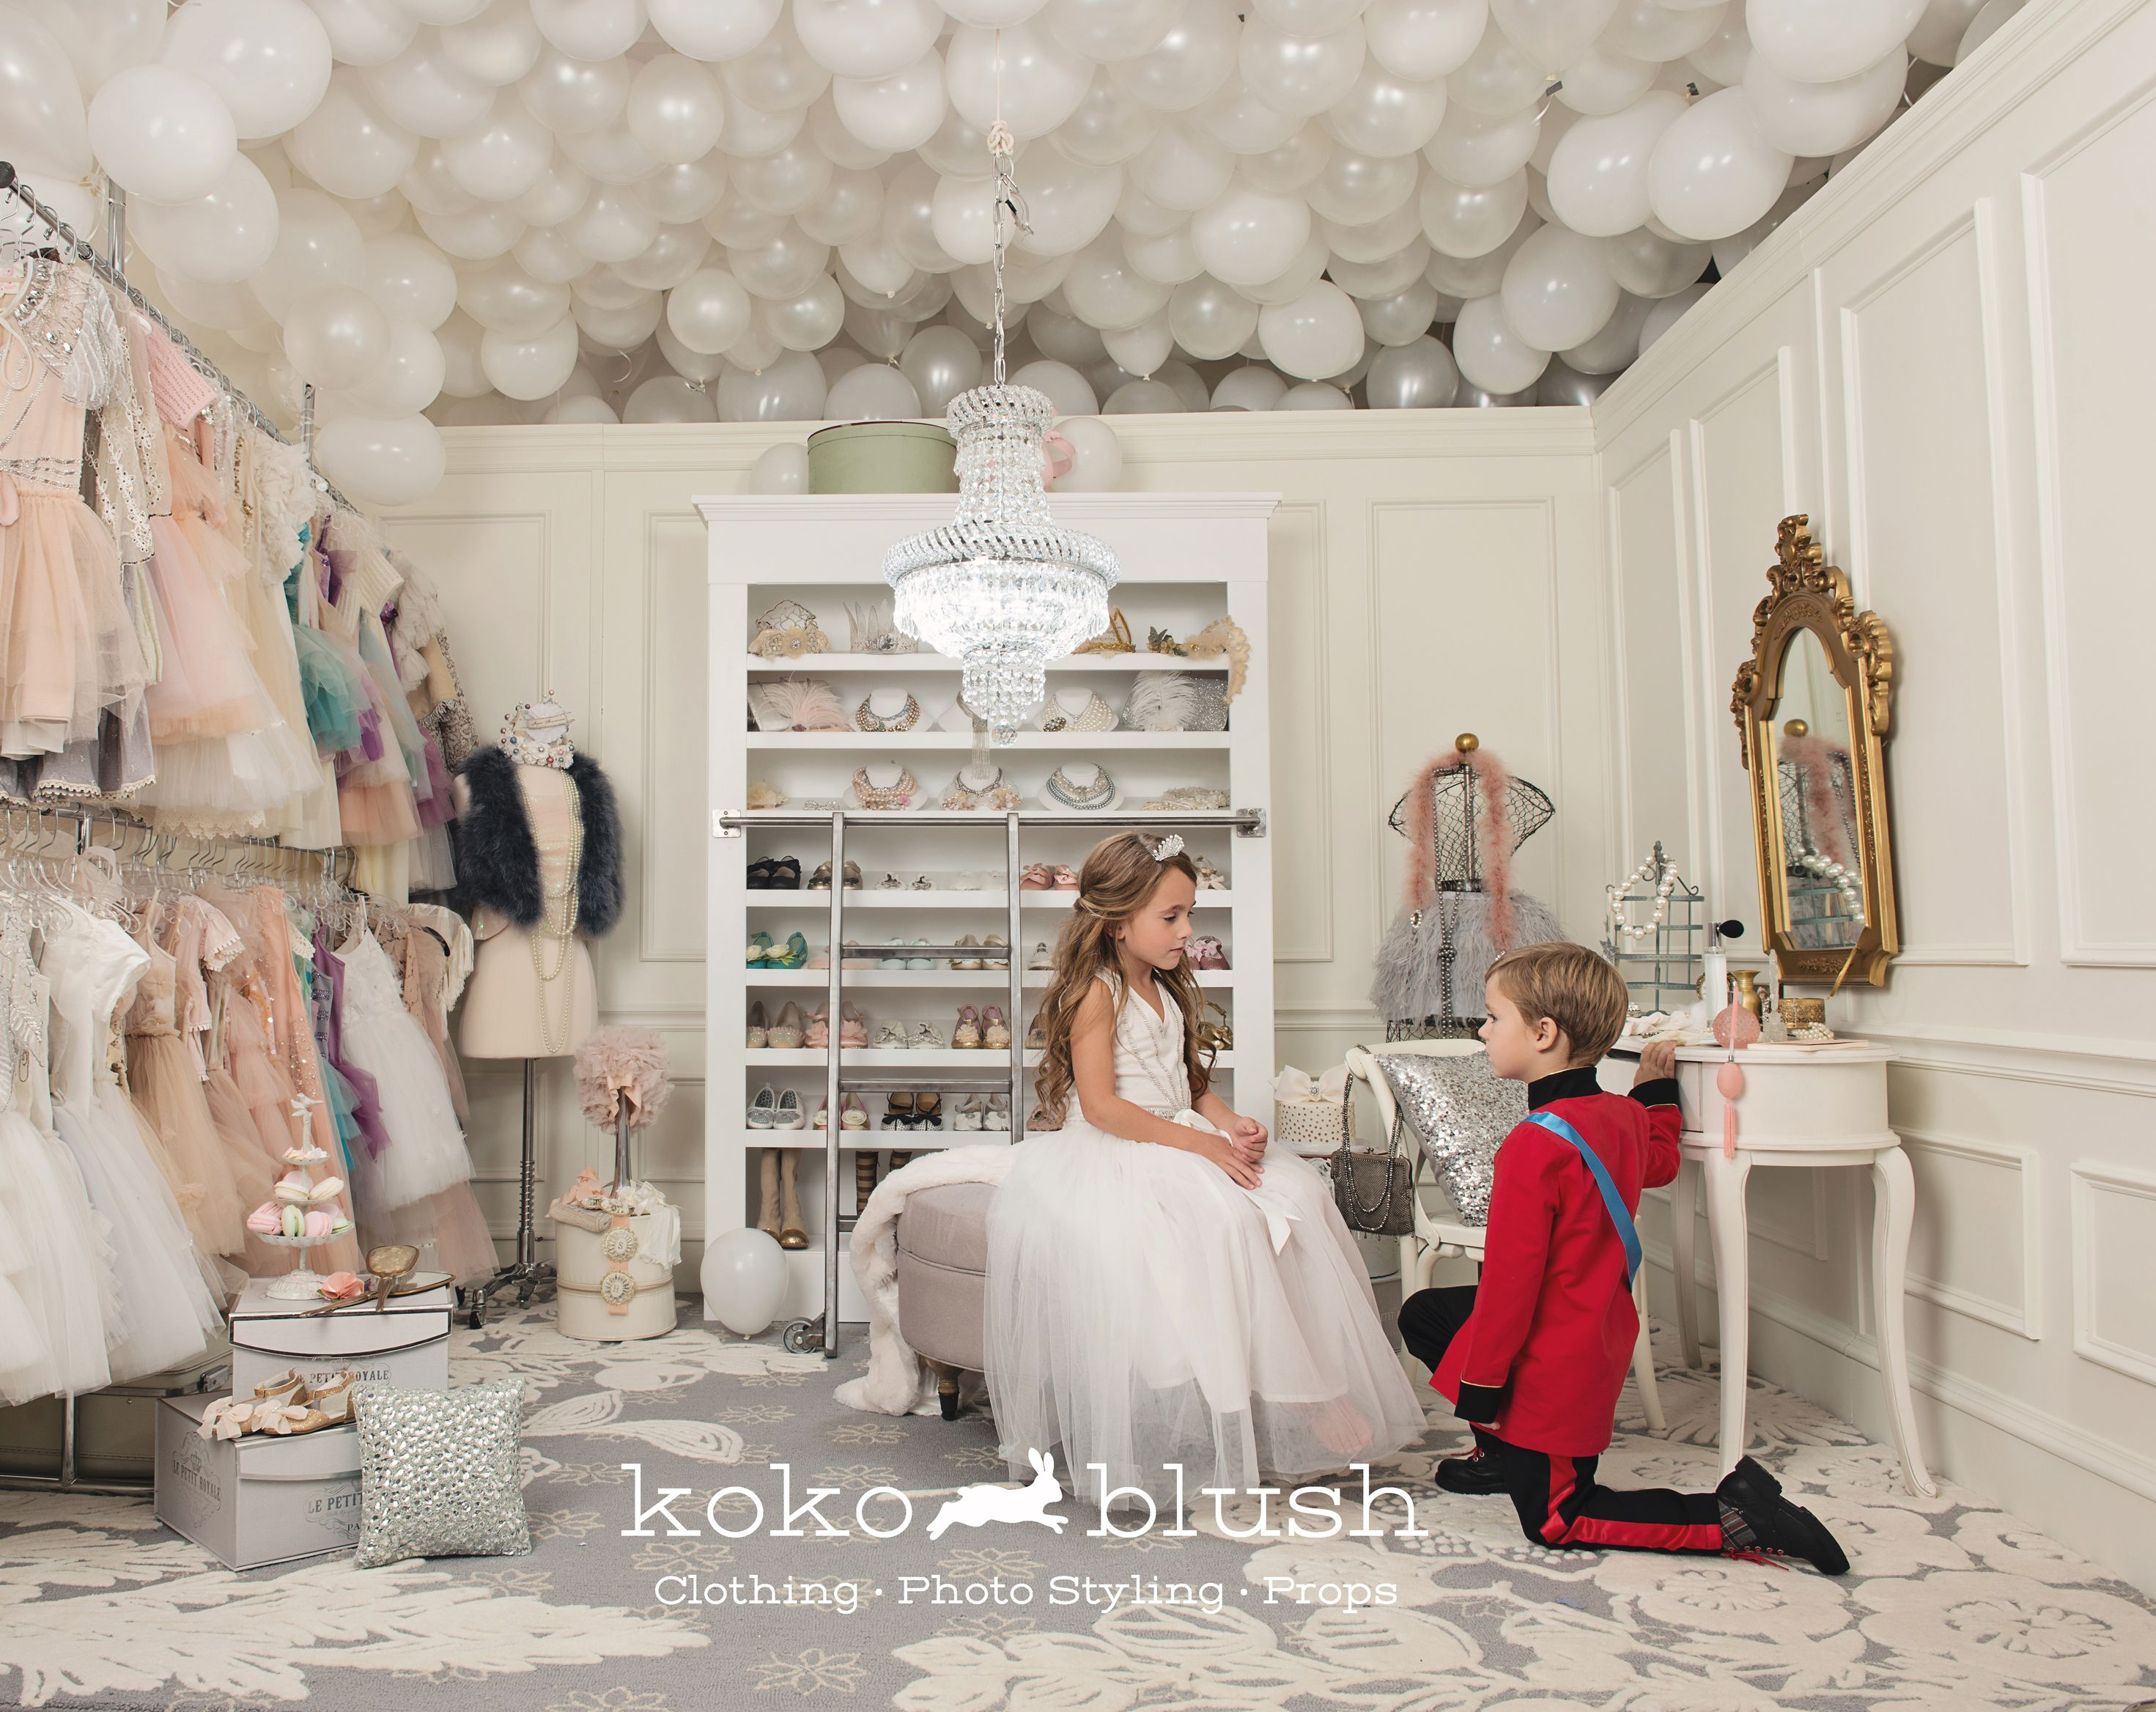 We had a blast building this set, and working with an amazing carpenter who built the custom shoe rack. How many hours do you think it took us to built the balloon ceiling?!  Guess for your chance to win big www.kokoblush.com